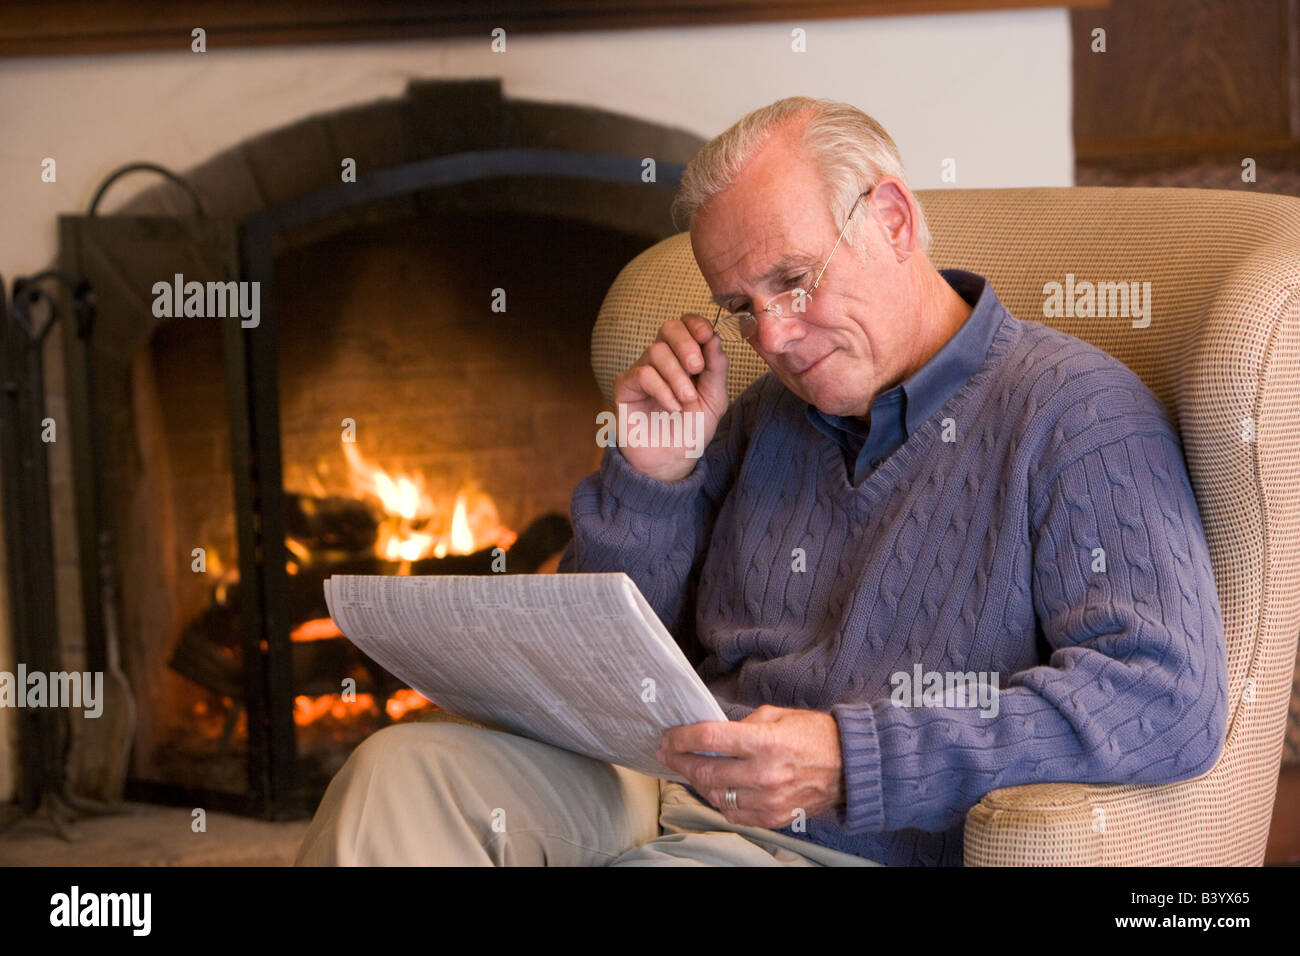 Man sitting in living room by fireplace with newspaper - Stock Image